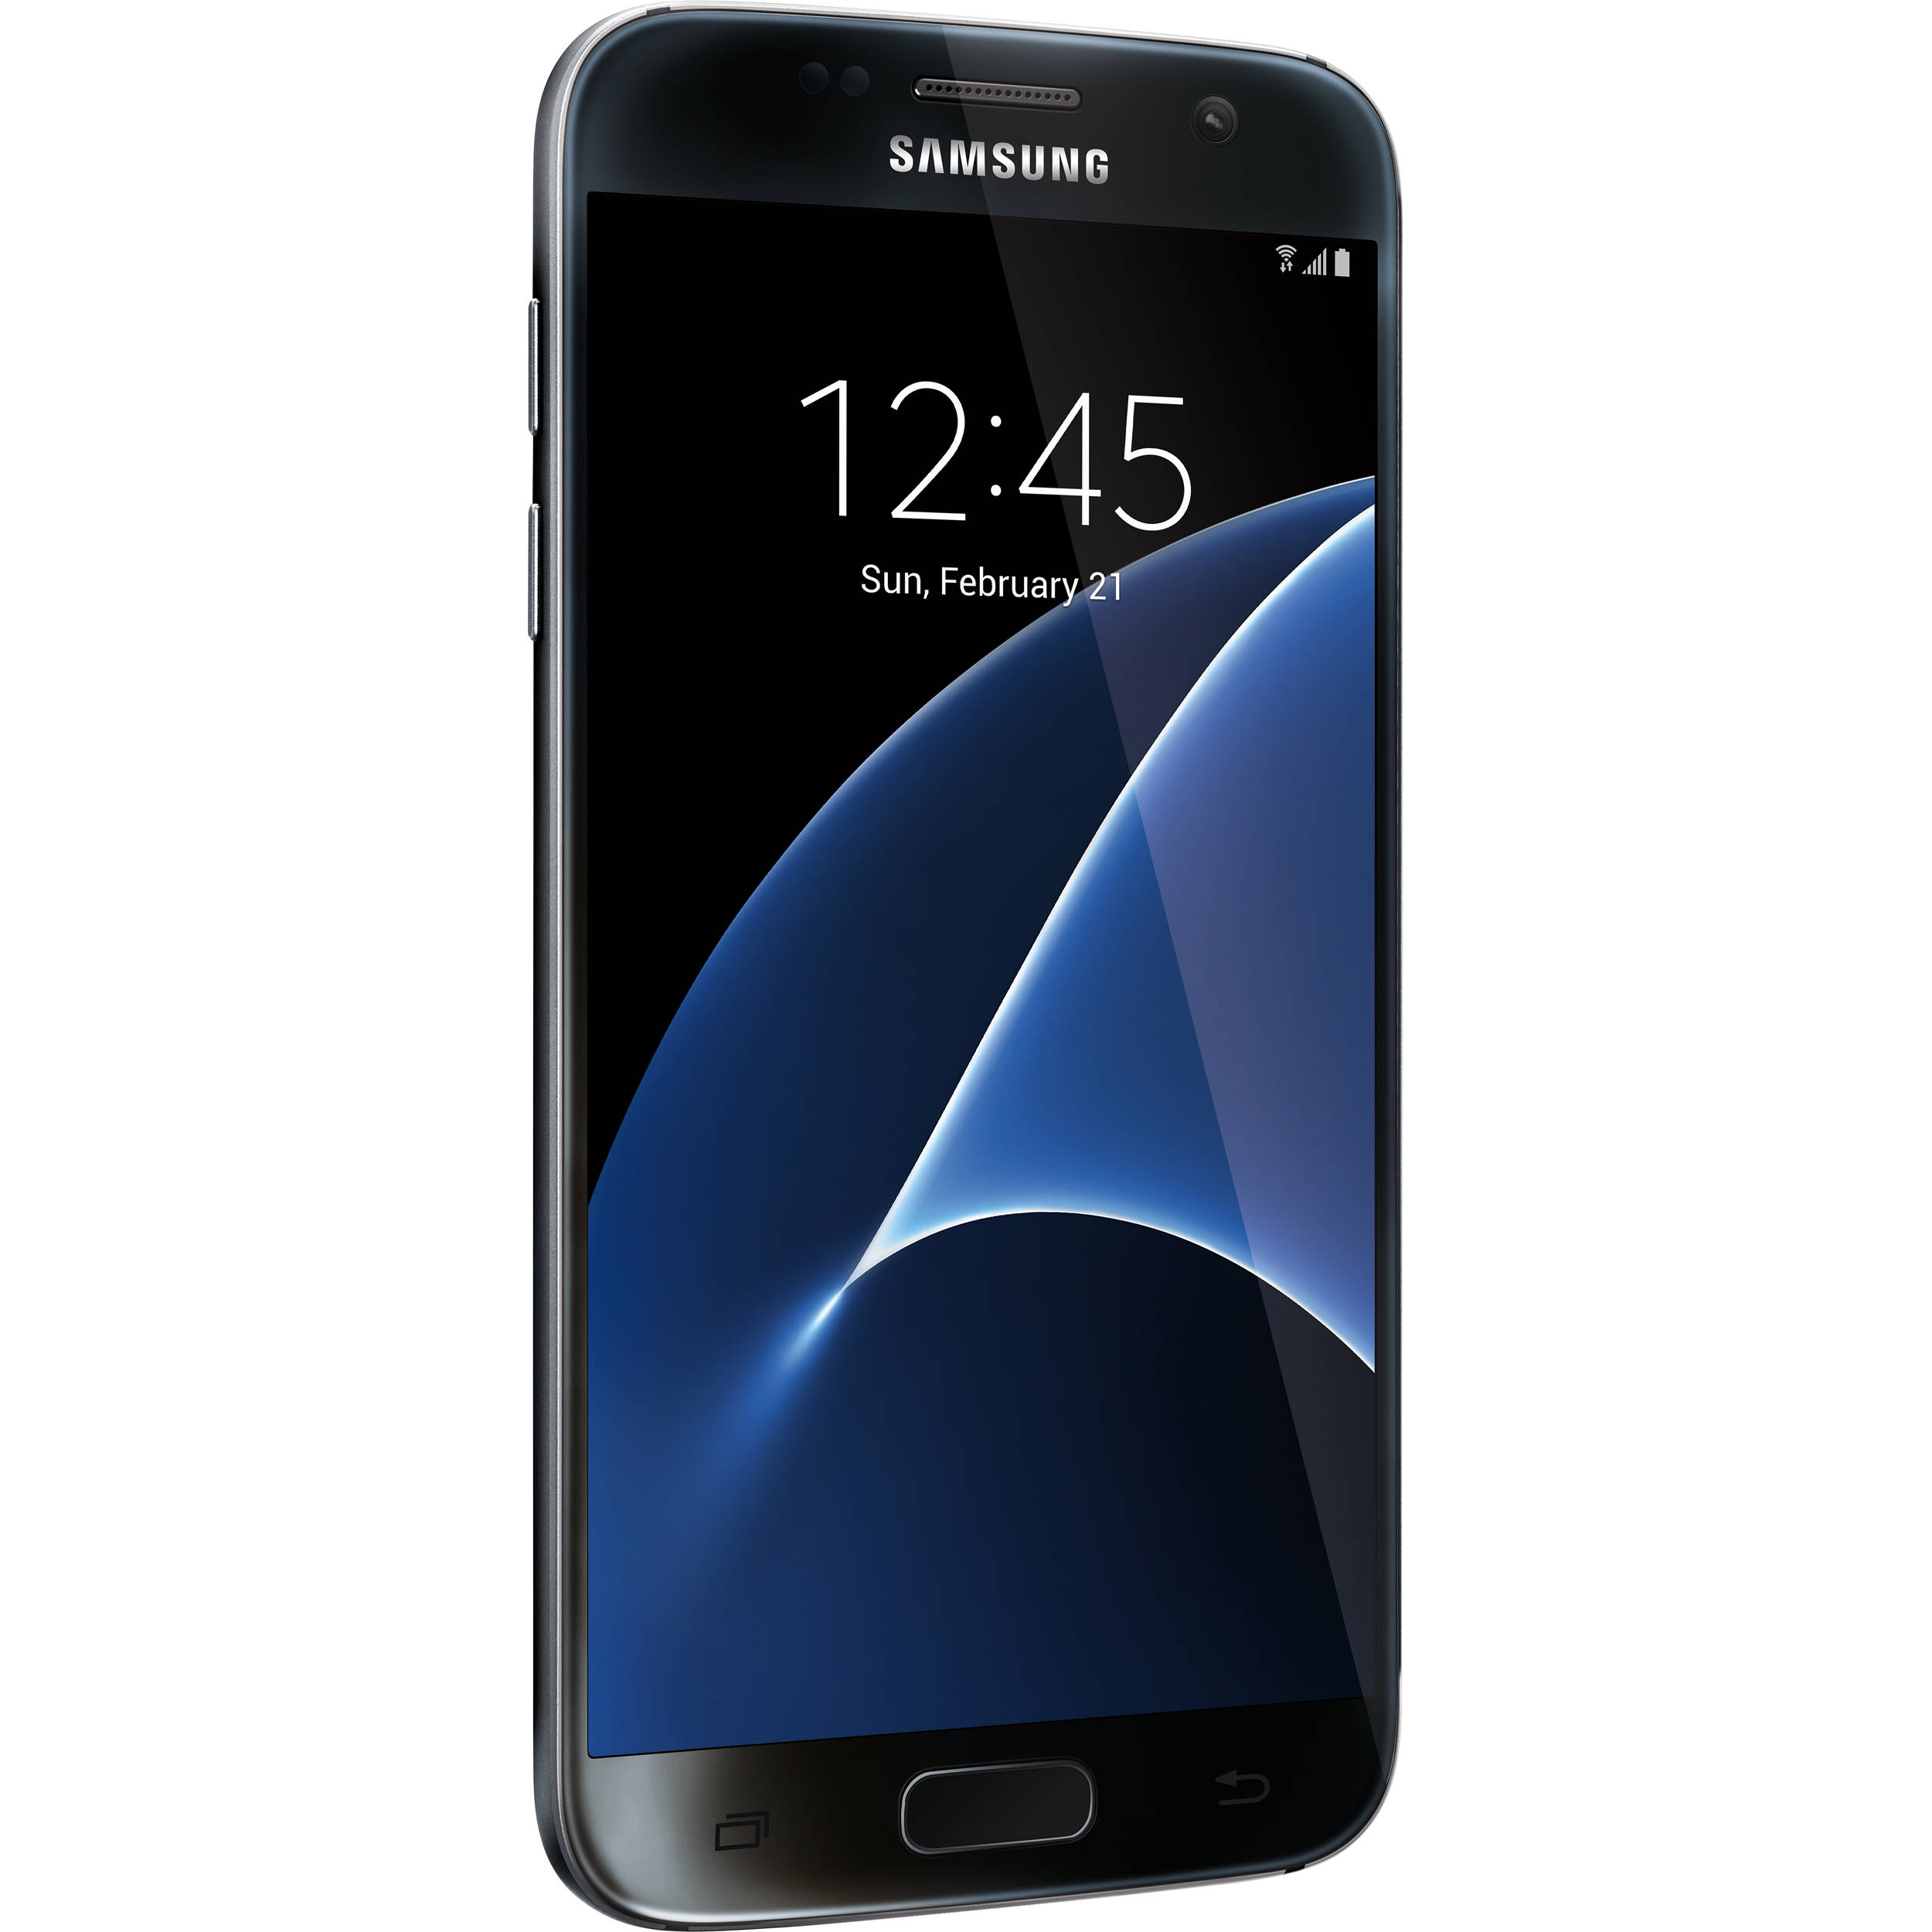 Download COMBINATION file SAMSUNG Galaxy S7 SM-G930U build number G930UUEU1AQA1